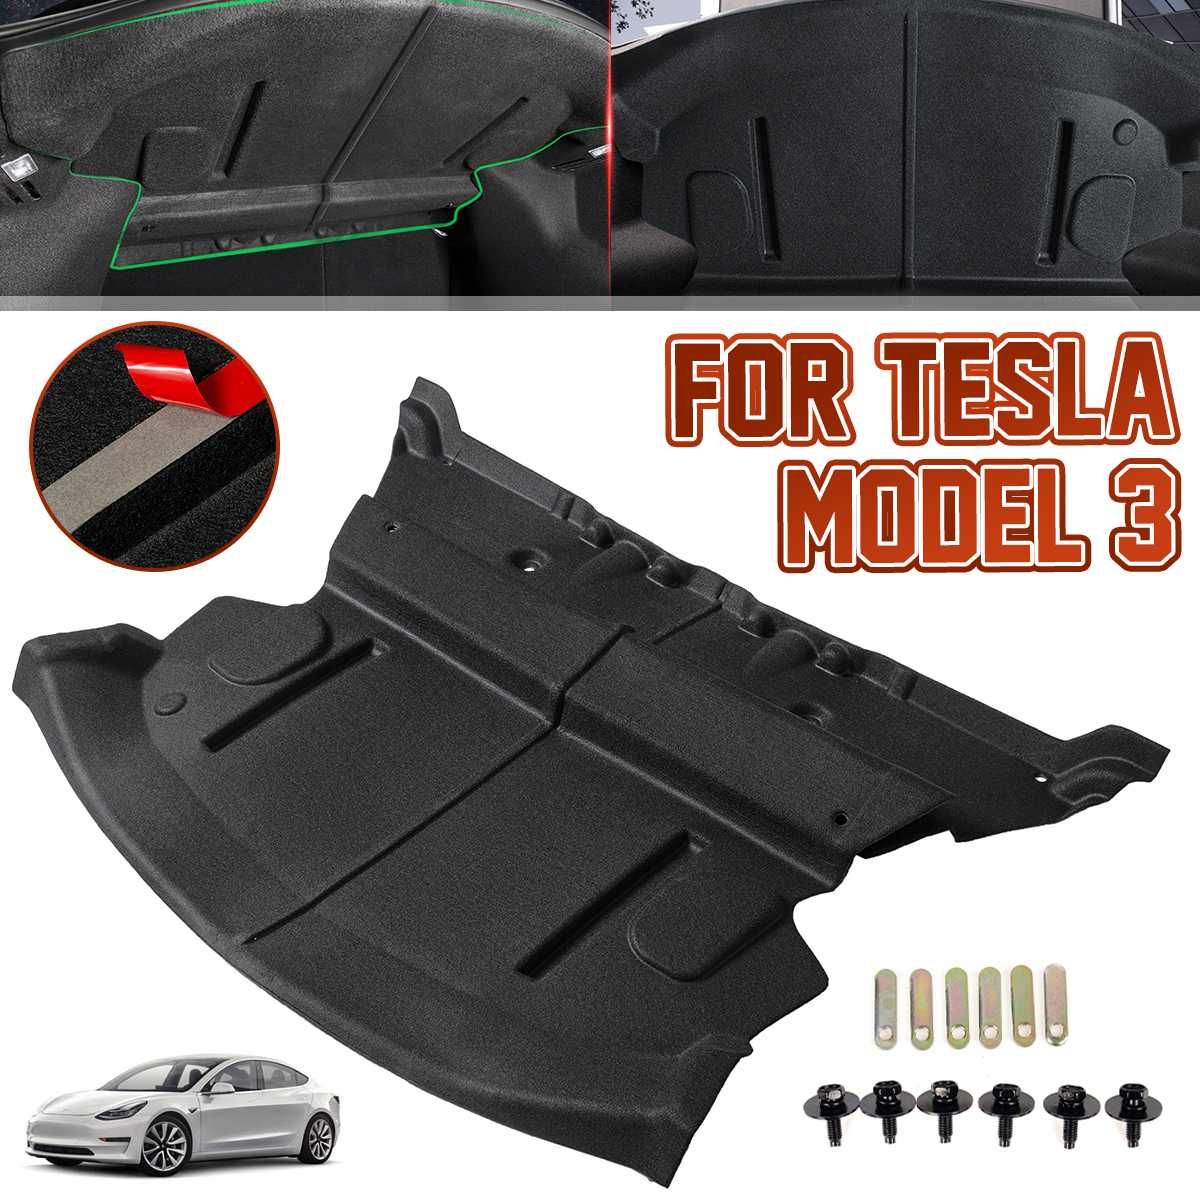 2X Car Rear Trunk Soundproof Cotton Mat Sound Proof Deadening Protective Cover Sticker For Tesla Model 3 2017 2018 2019 2020